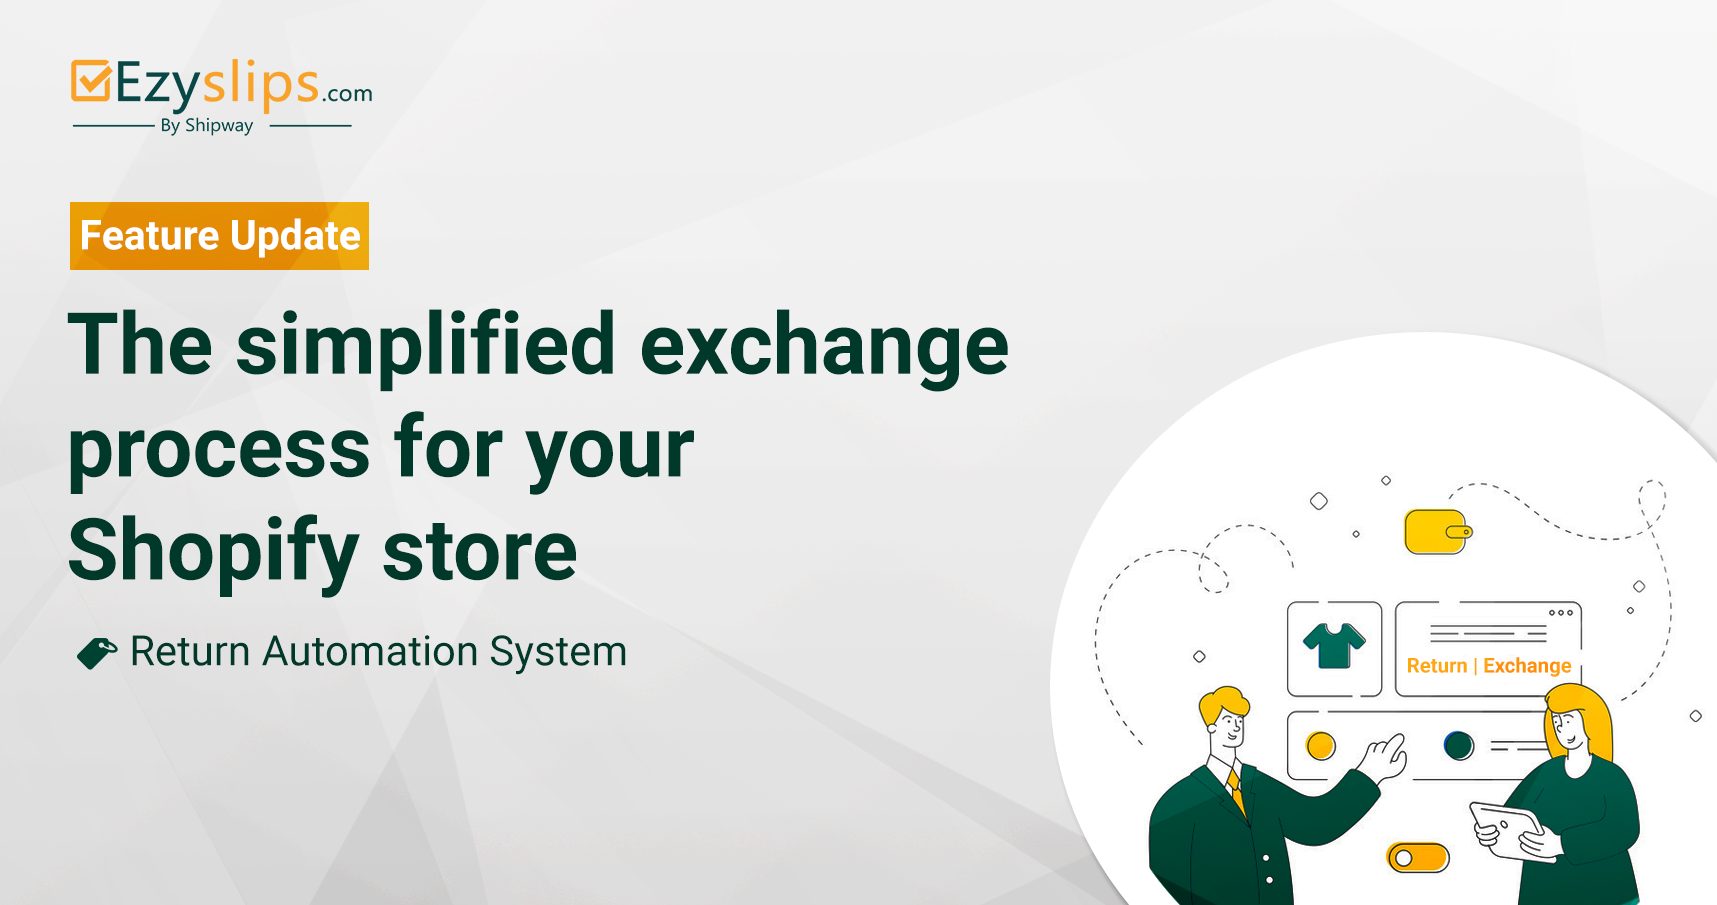 Feature Update: The simplified exchange process for your Shopify Store